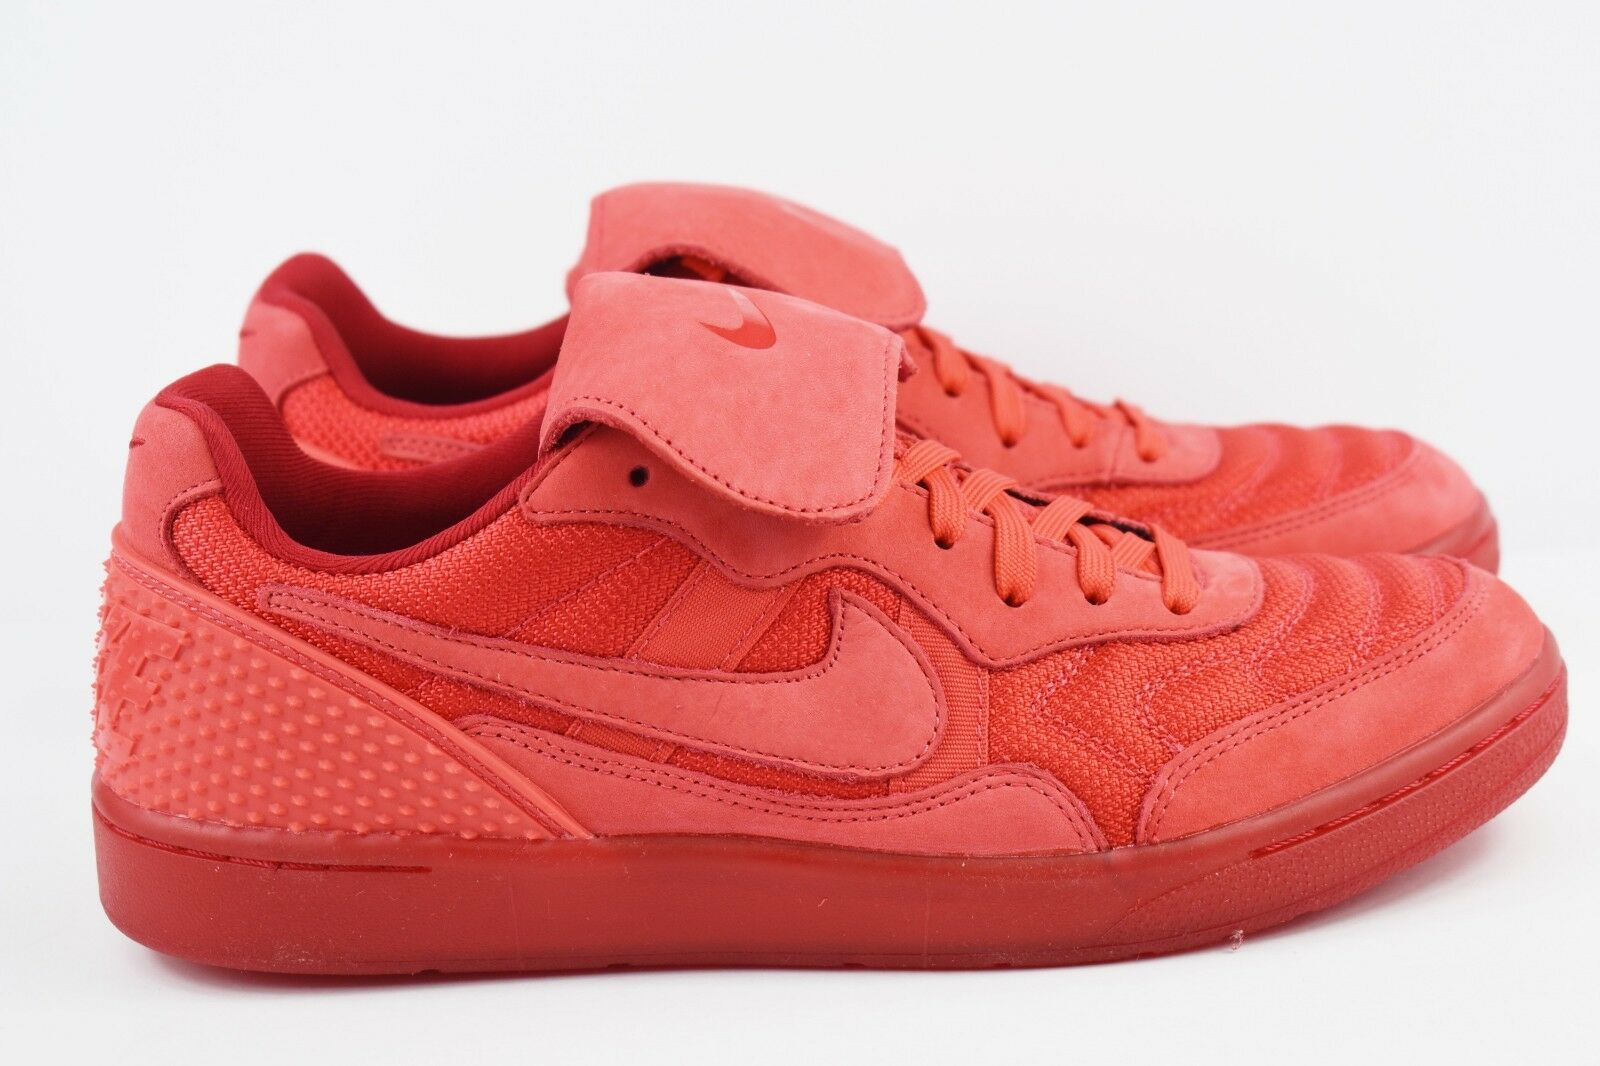 Nike NSW Tiempo 94 DLX QS Mens Size 9.5 Red Indoor Soccer Shoes 779519 600 Rare